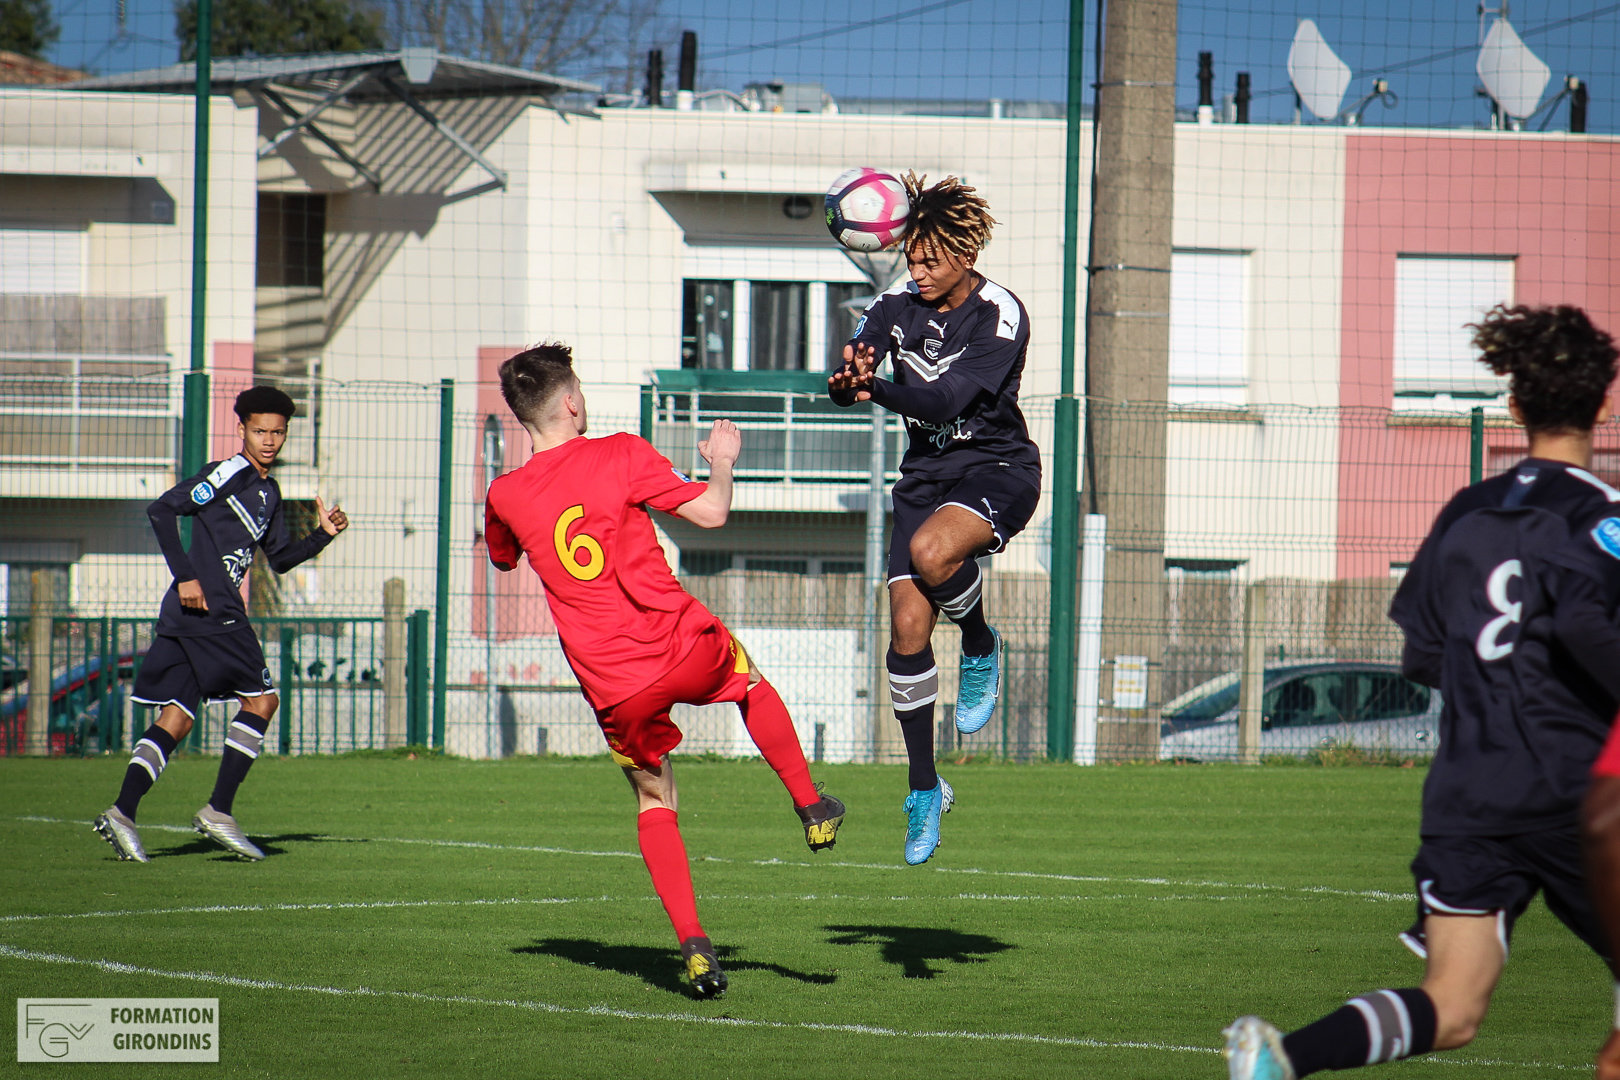 Cfa Girondins : Les photos de Bordeaux - Le Mans - Formation Girondins